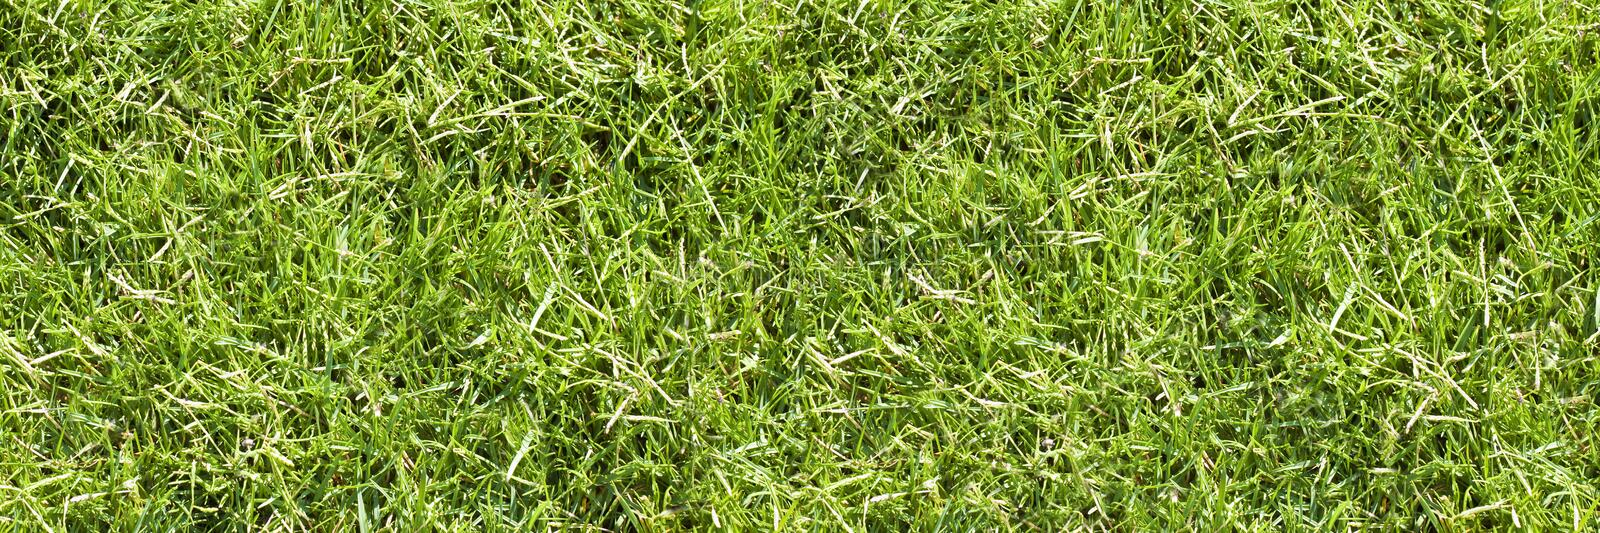 Detail of a beautiful green mowed lawn stock photos